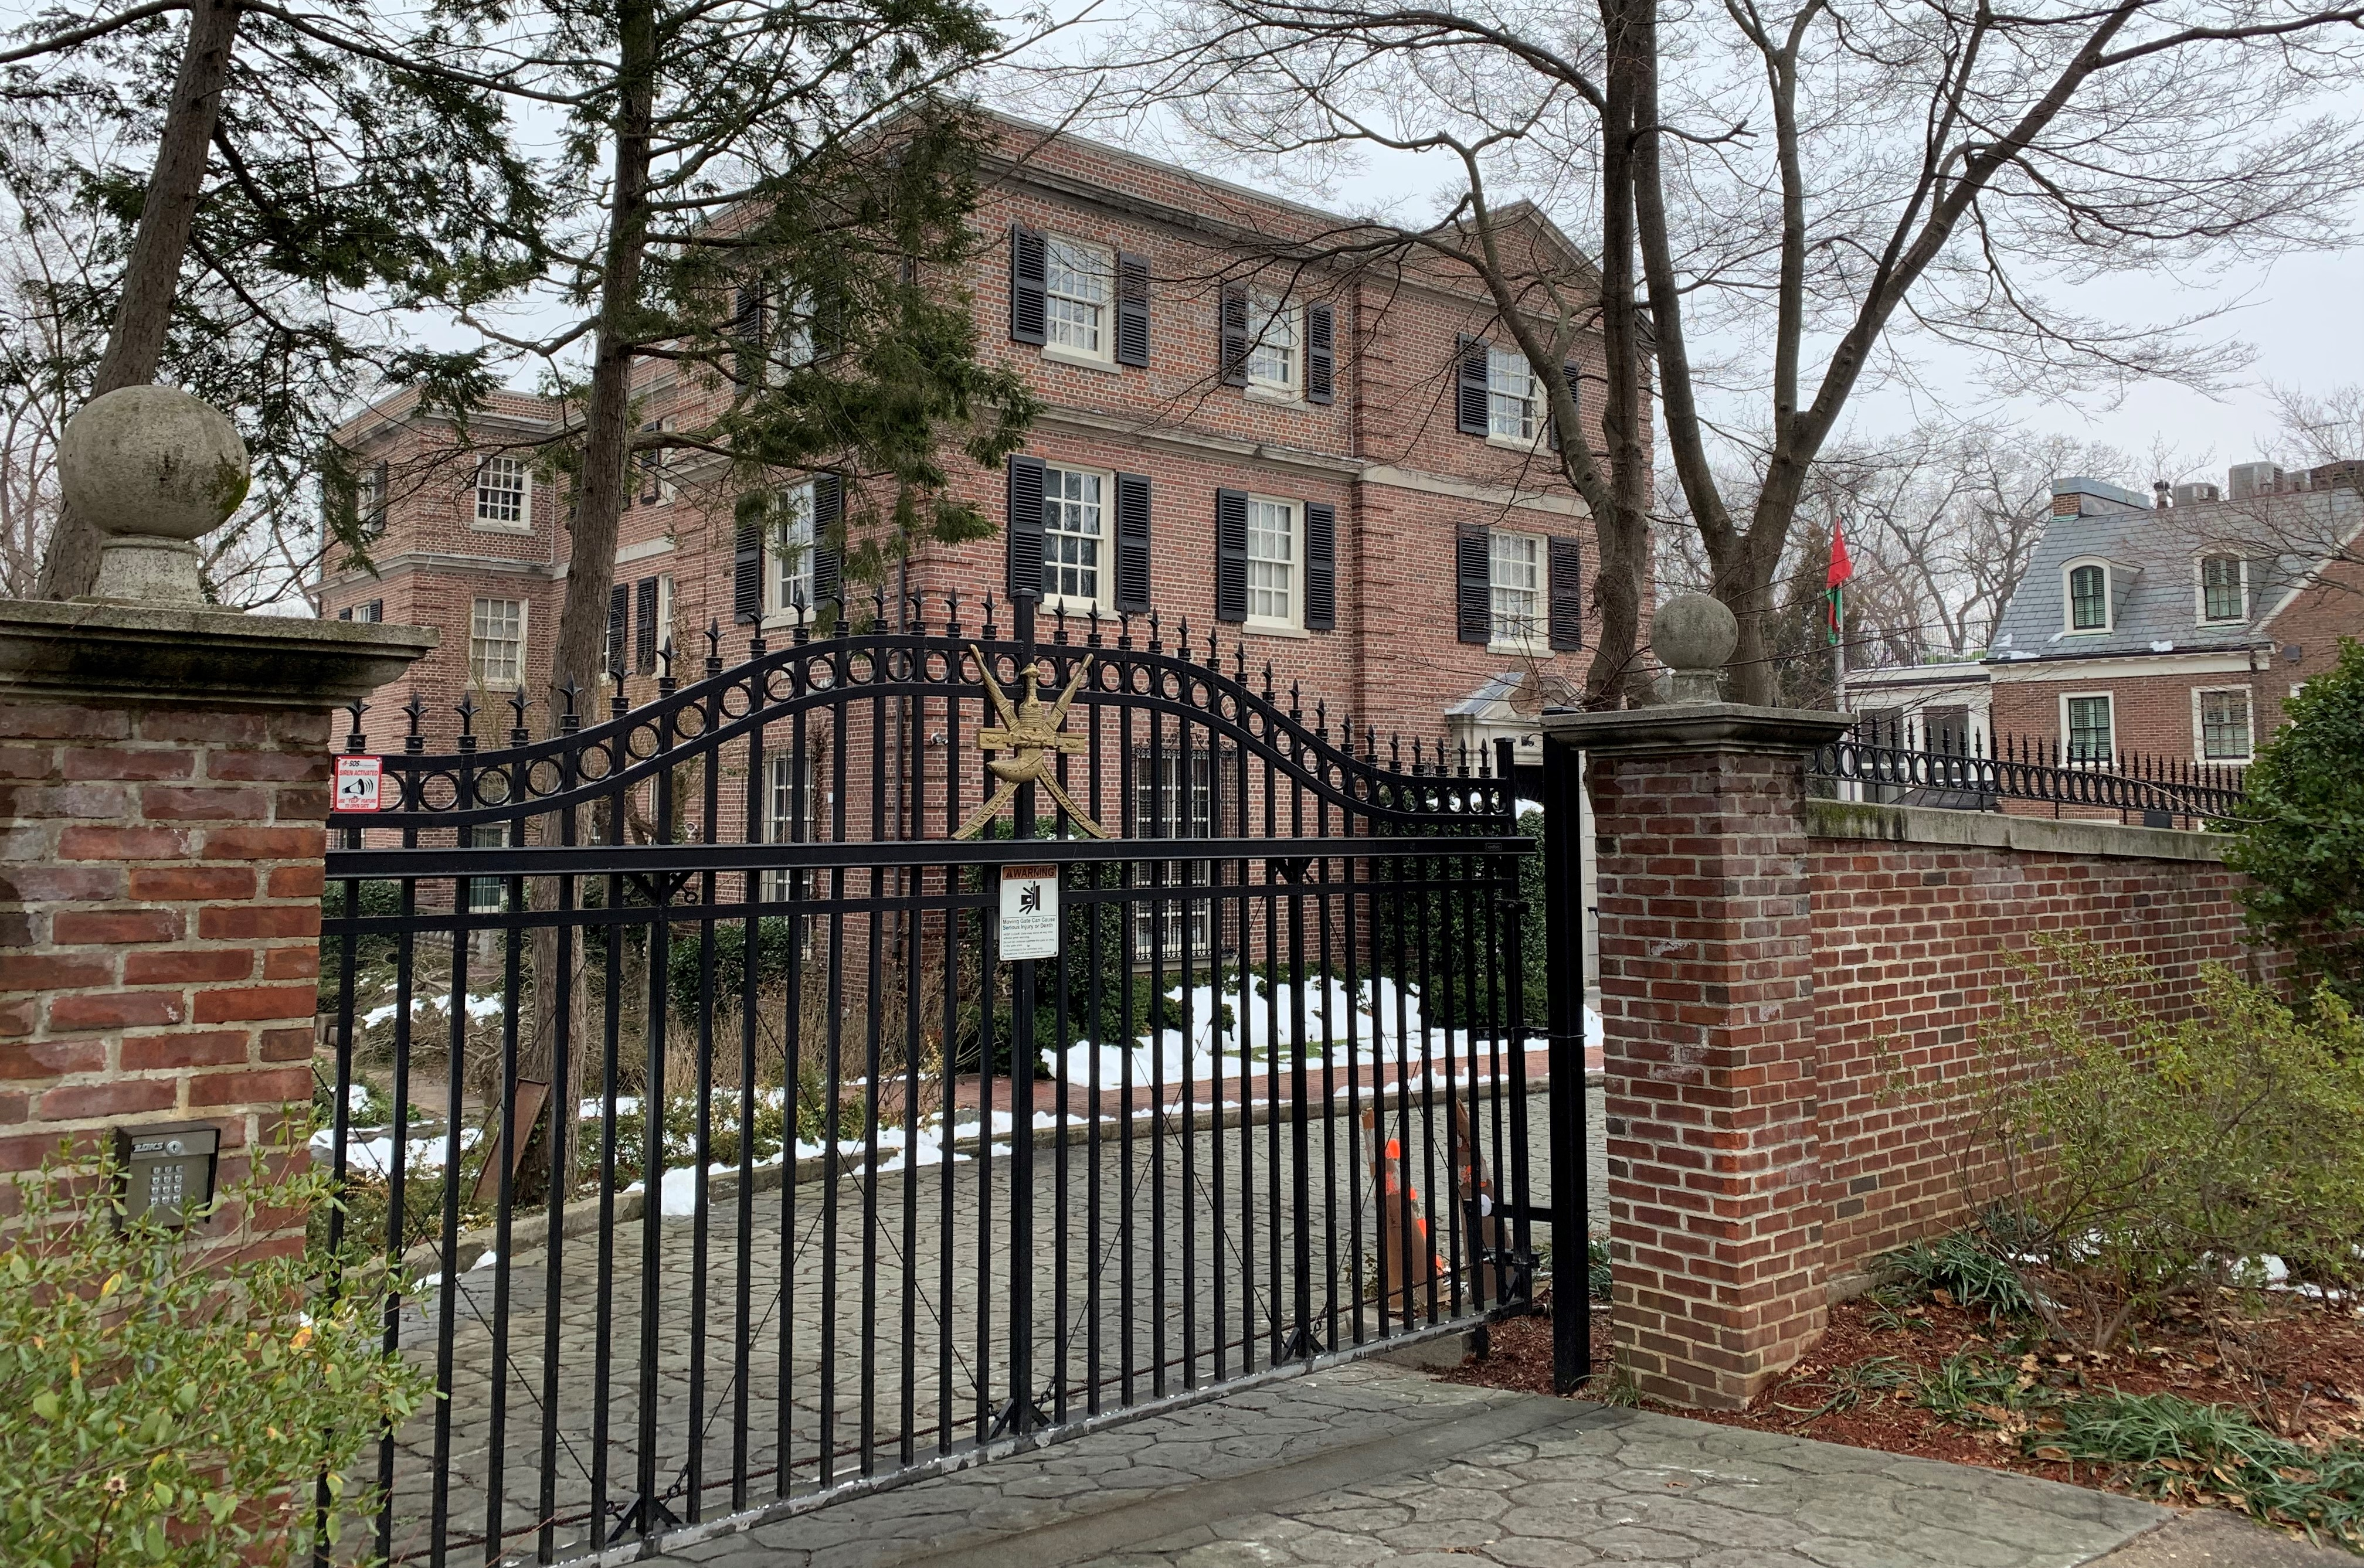 Real Estate & Homes For Sale Near The Embassy of Oman in Washington, DC. Artyom Shmatko Luxury Real Estate Agent